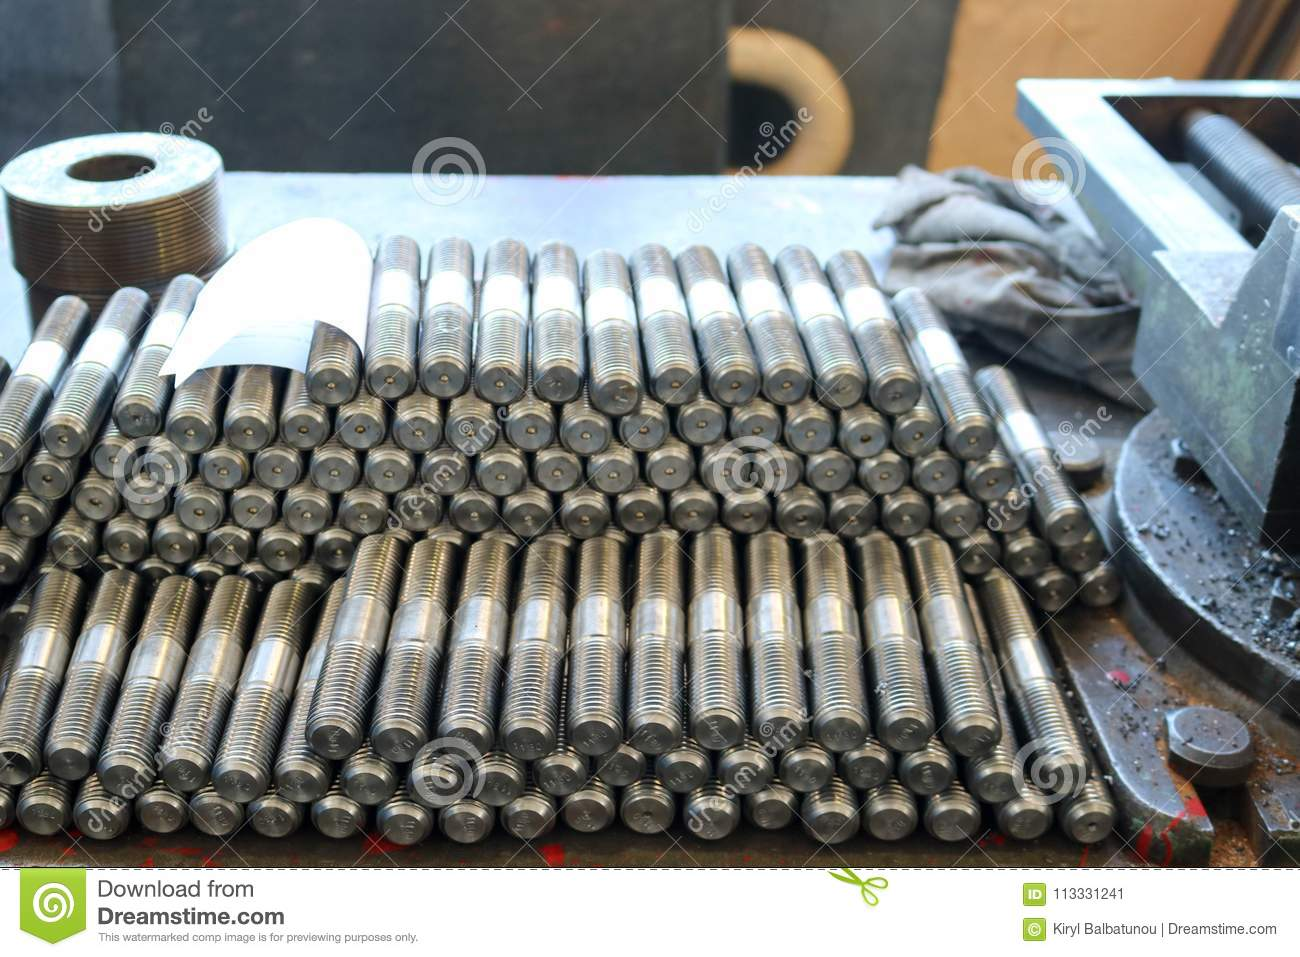 Many shiny metal studs with carving, nuts, iron rings, gaskets, metalwork tools and industrial vise